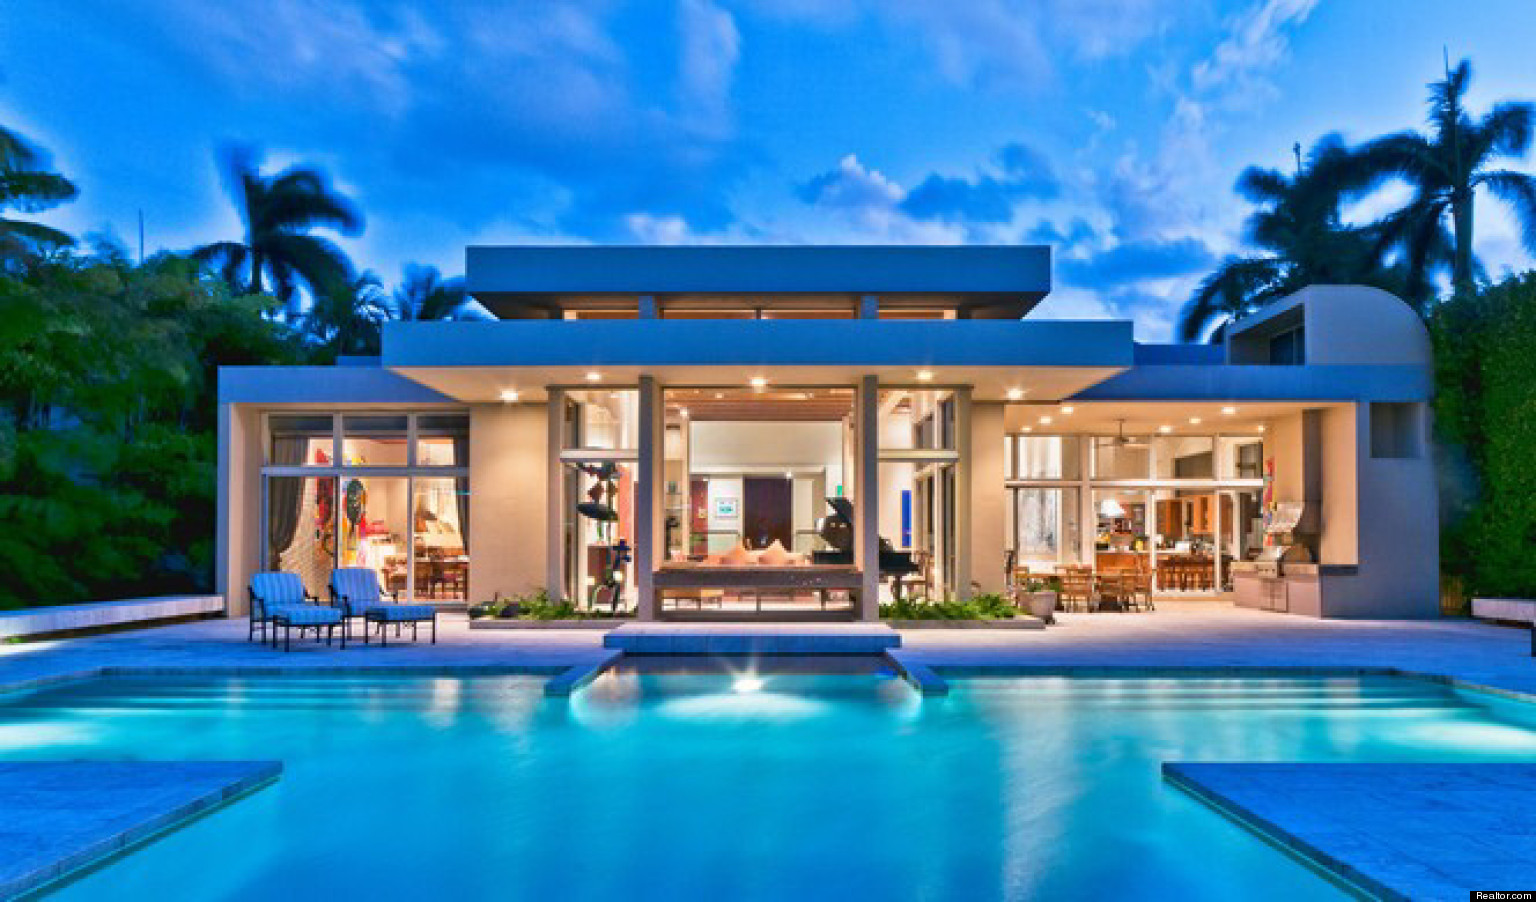 The 10 Most Expensive Homes On Miami Beach's Sunset